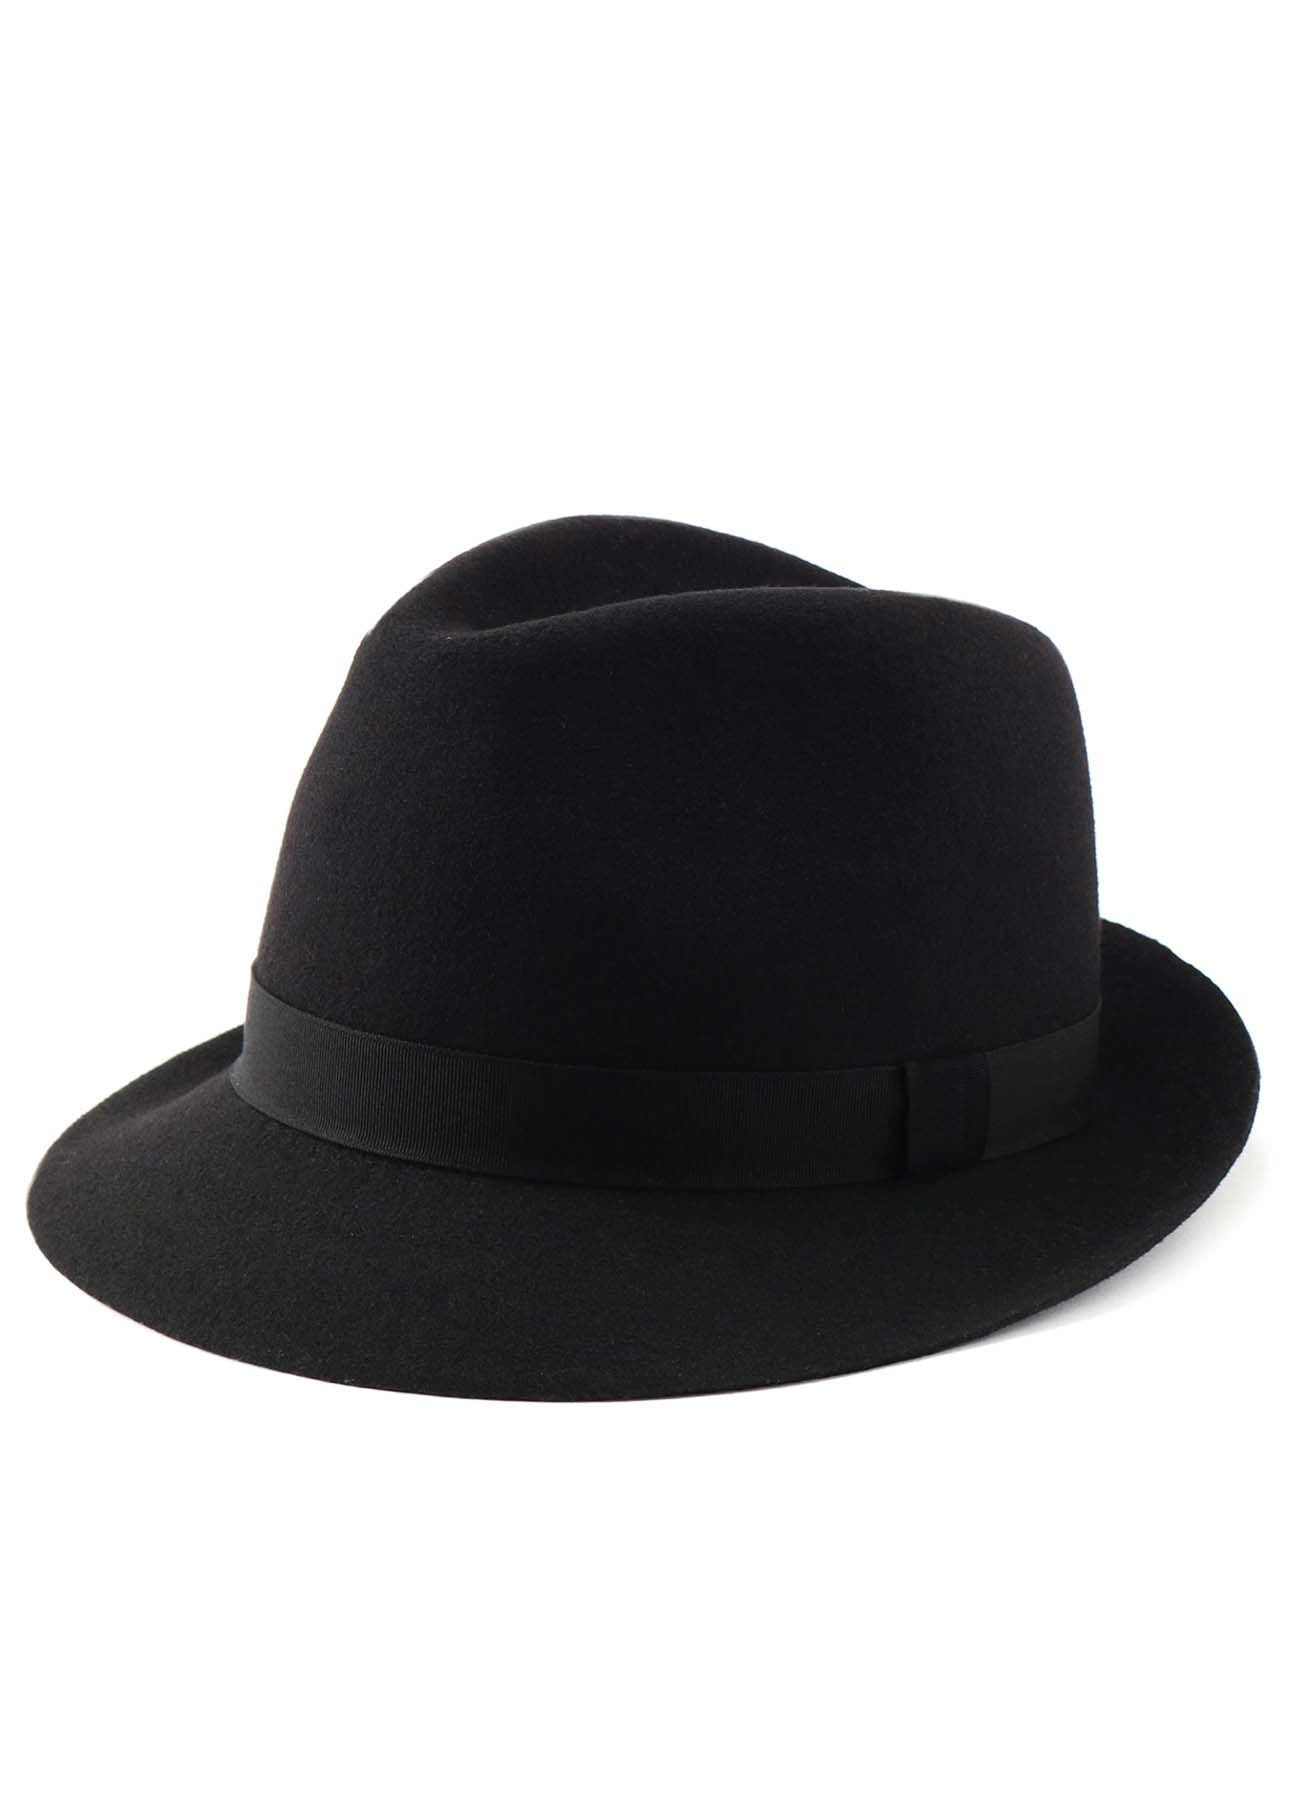 WOOL FELT HAT BODY TYROLEAN HAT